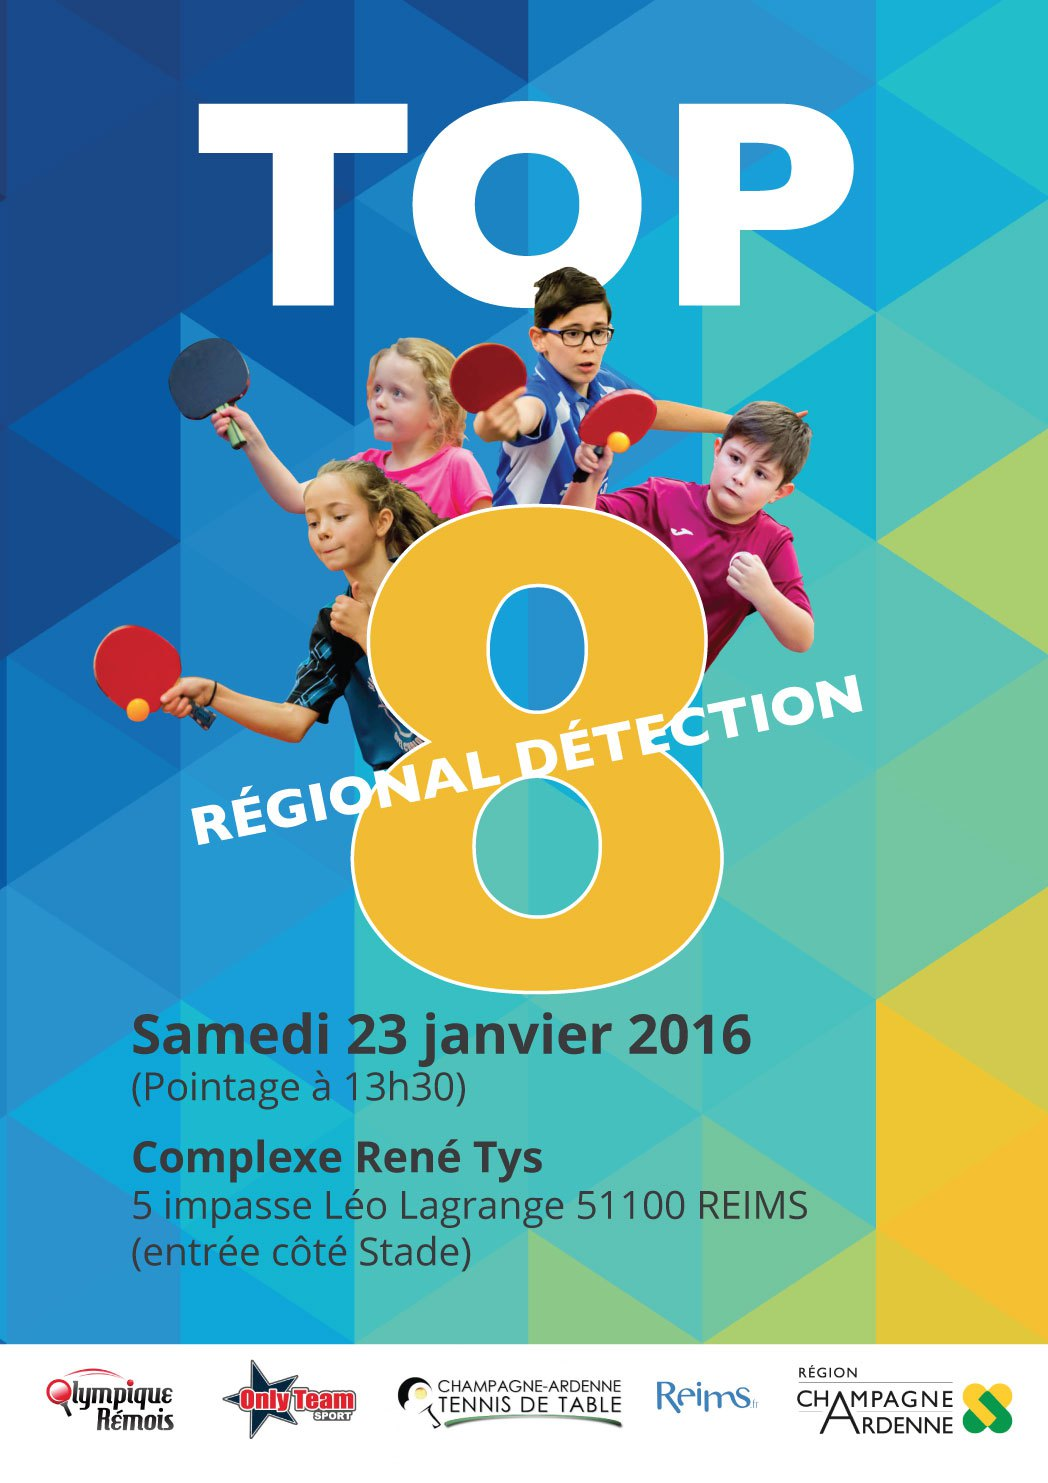 data/2015/competitions/jeunes/top/top8/affiche_top8.jpg